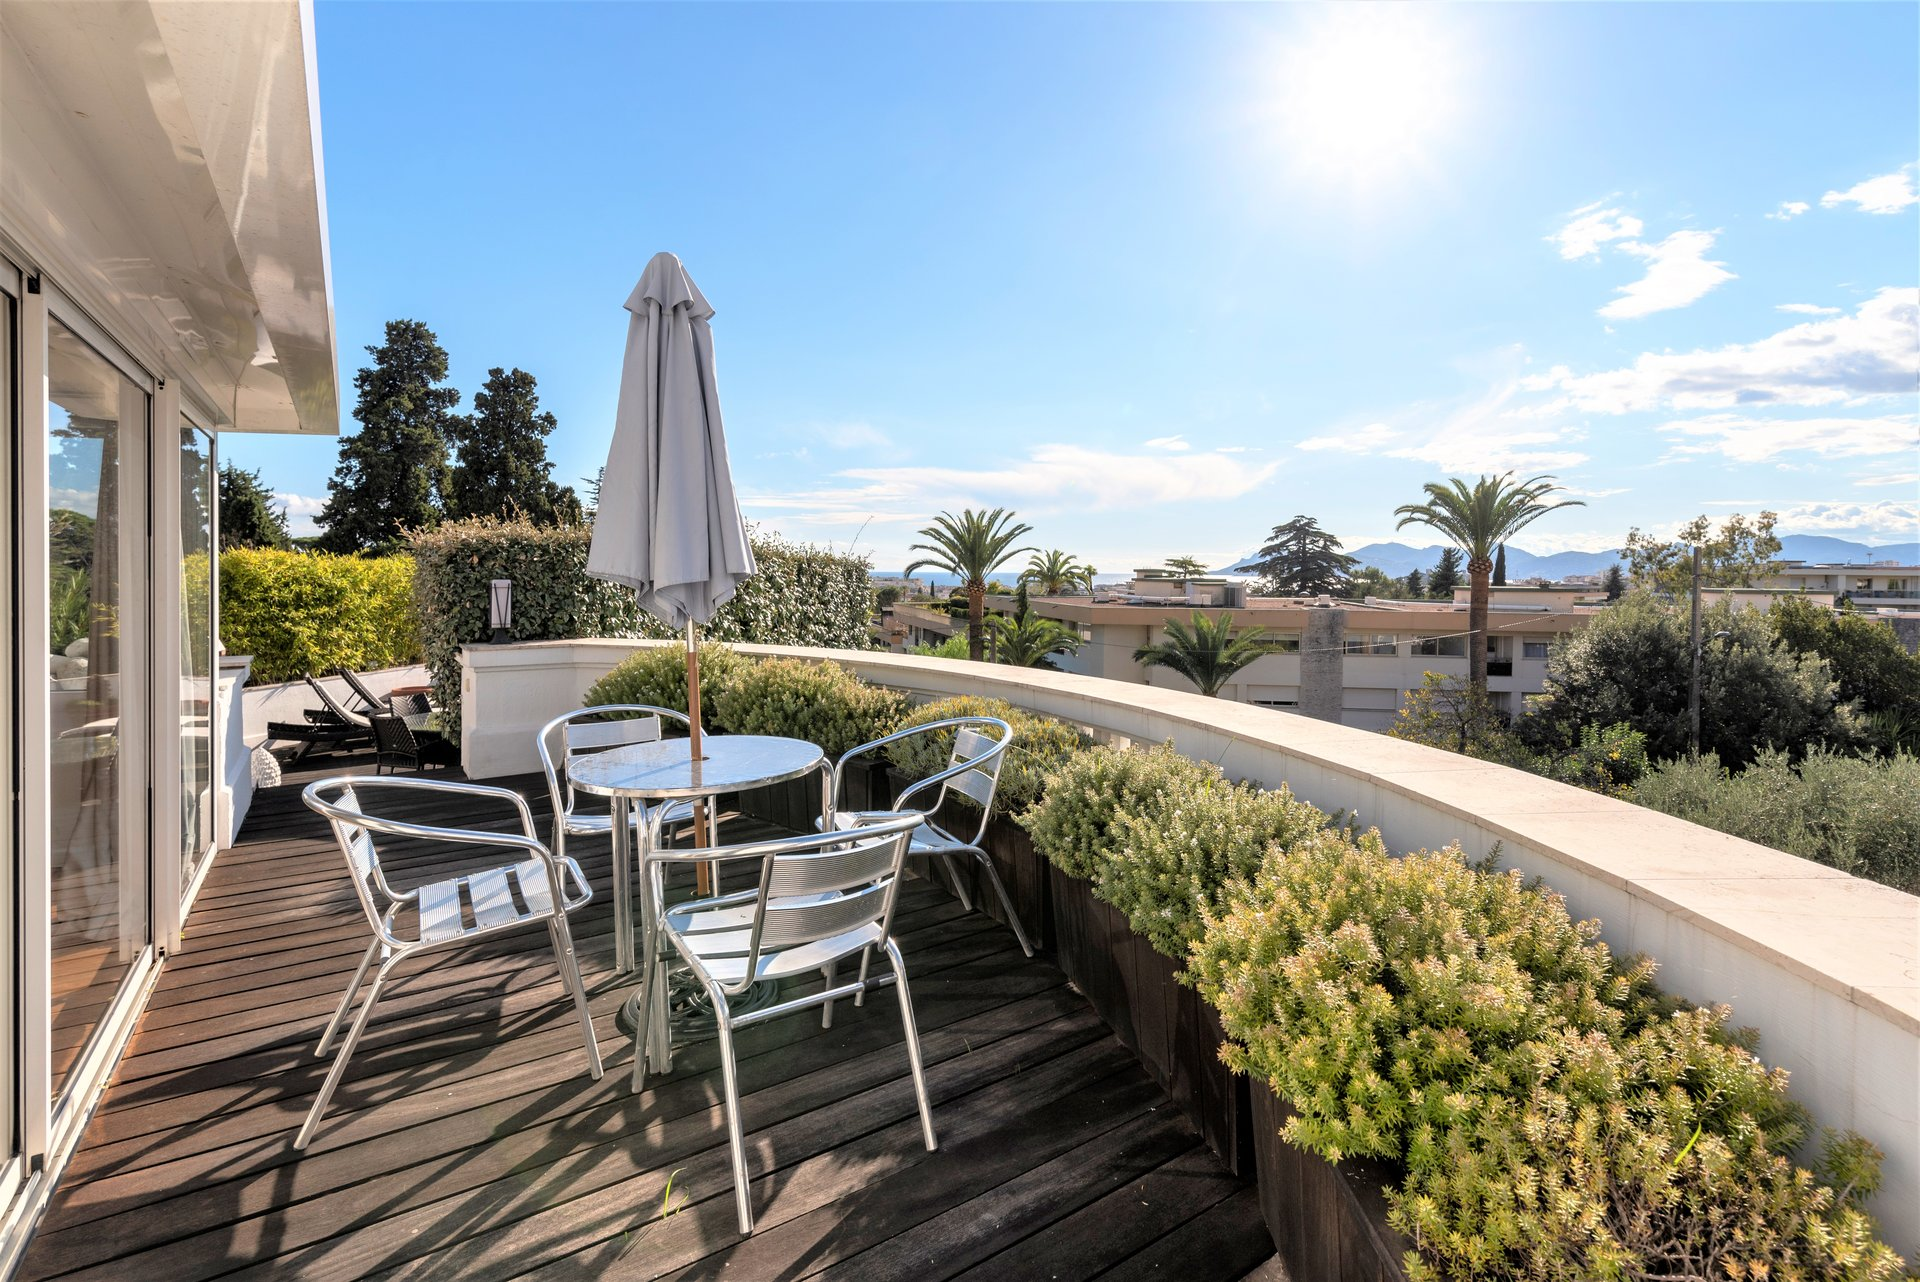 FOR SALE CANNES OXFORD EXEPTIONAL APARTMENT 148M2 THREE BEDROOMS THREE TERRACES